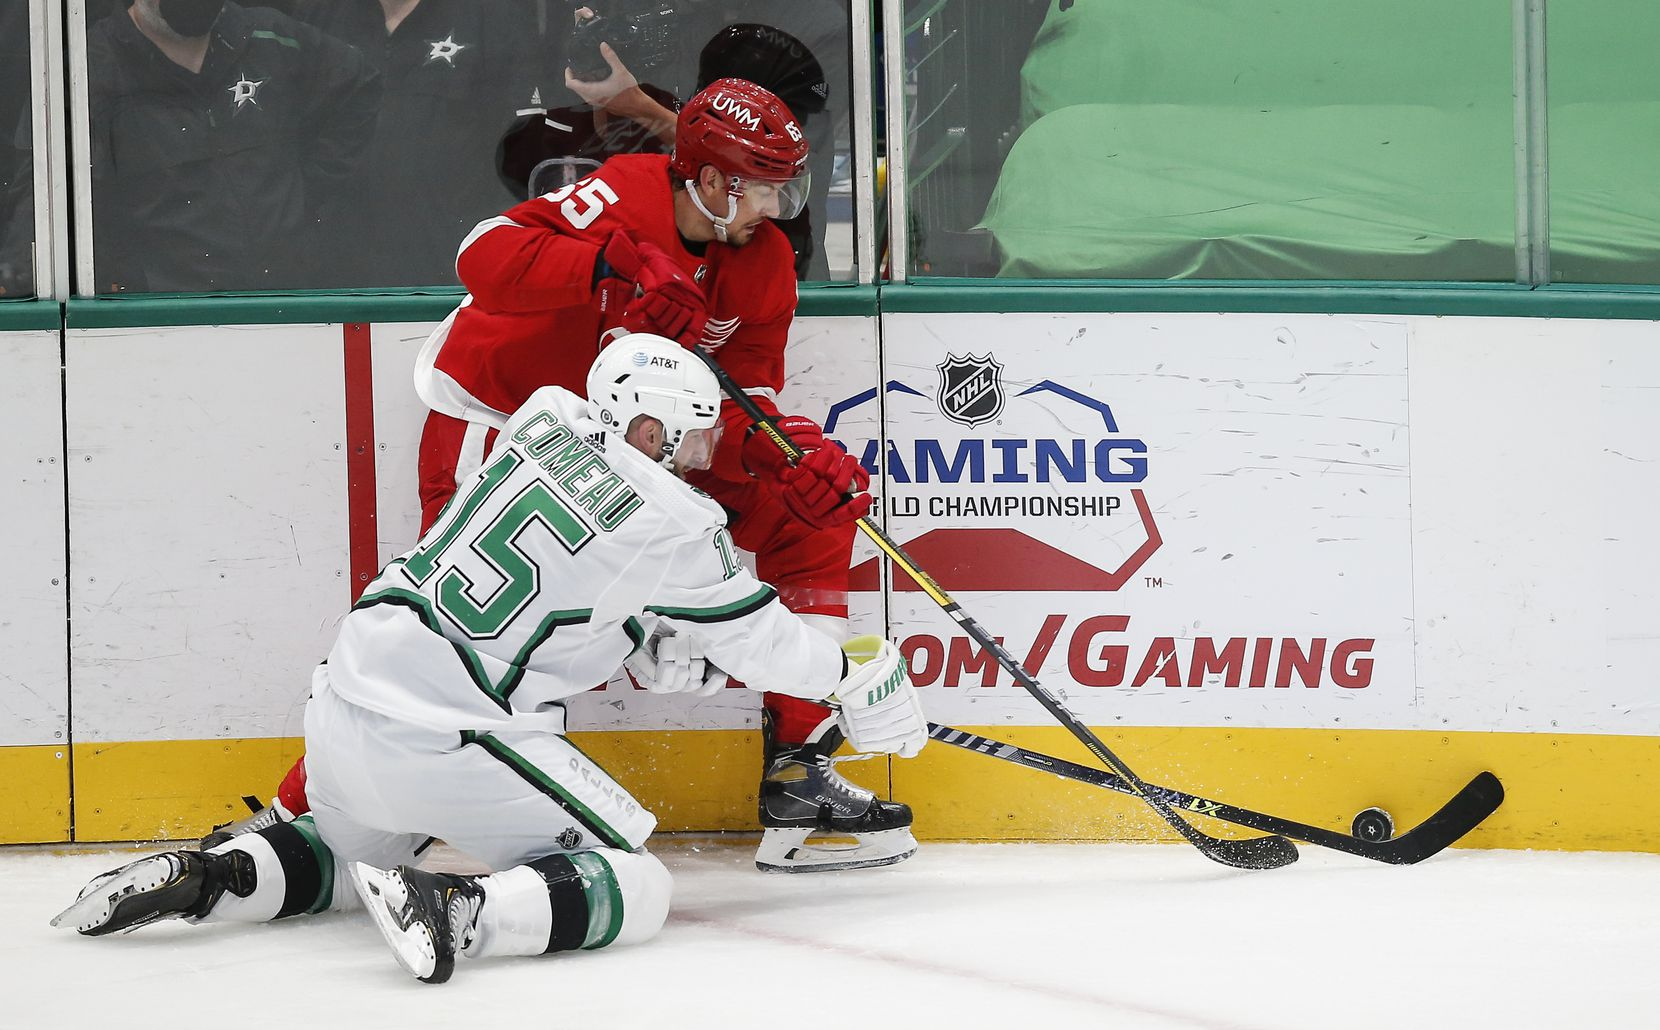 Dallas Stars forward Blake Comeau (15) battles Detroit Red Wings defenseman Danny DeKeyser (65) for the puckduring the first period of an NHL hockey game in Dallas, Monday, April 19, 2021. (Brandon Wade/Special Contributor)